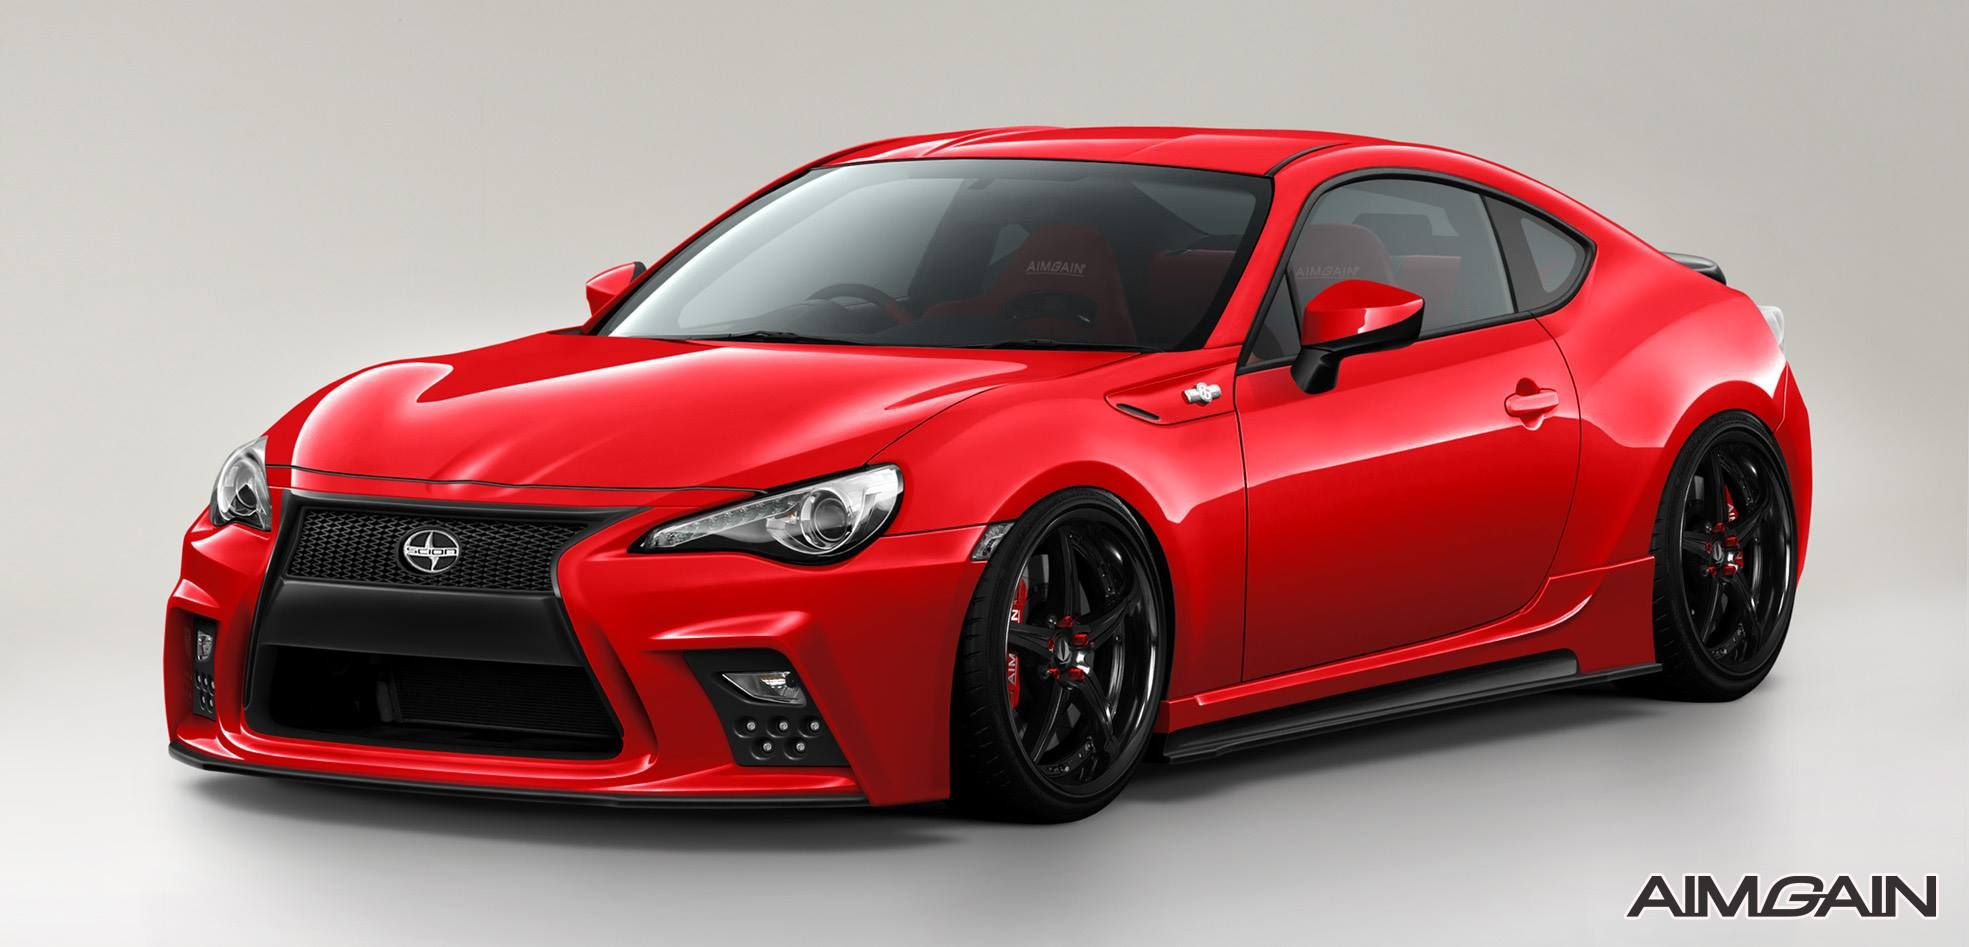 body kits aero parts scion fr s forum subaru brz forum toyota 86 gt 86 forum as1 forum. Black Bedroom Furniture Sets. Home Design Ideas